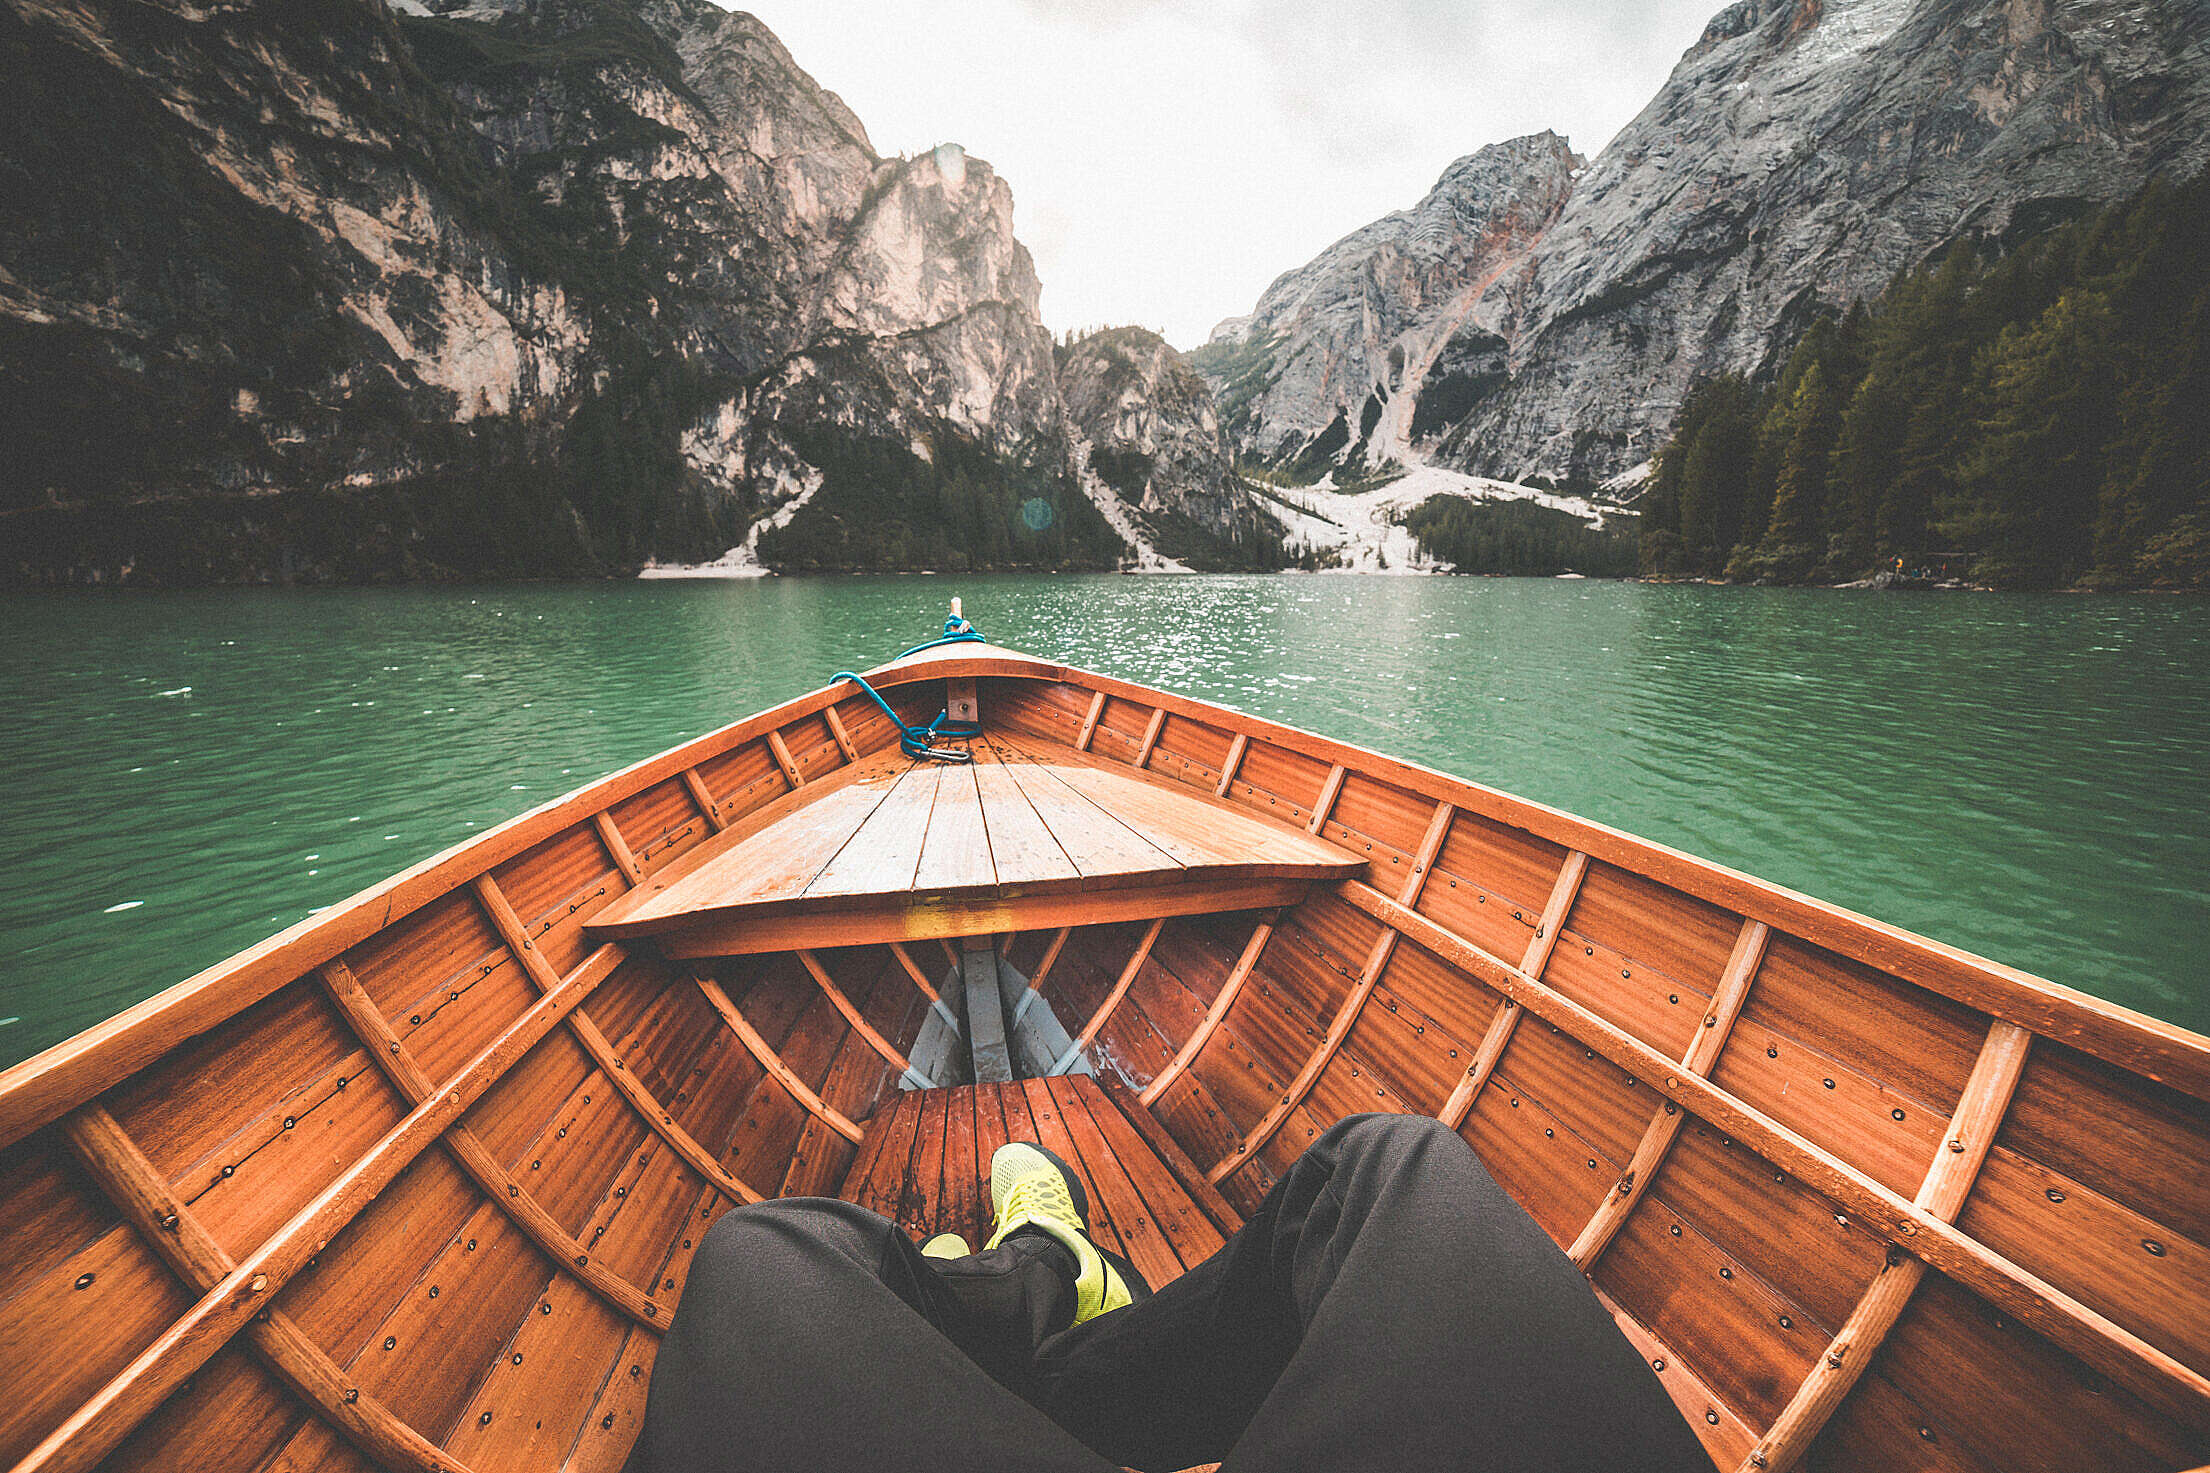 Boat Rowing on a Lake Free Stock Photo